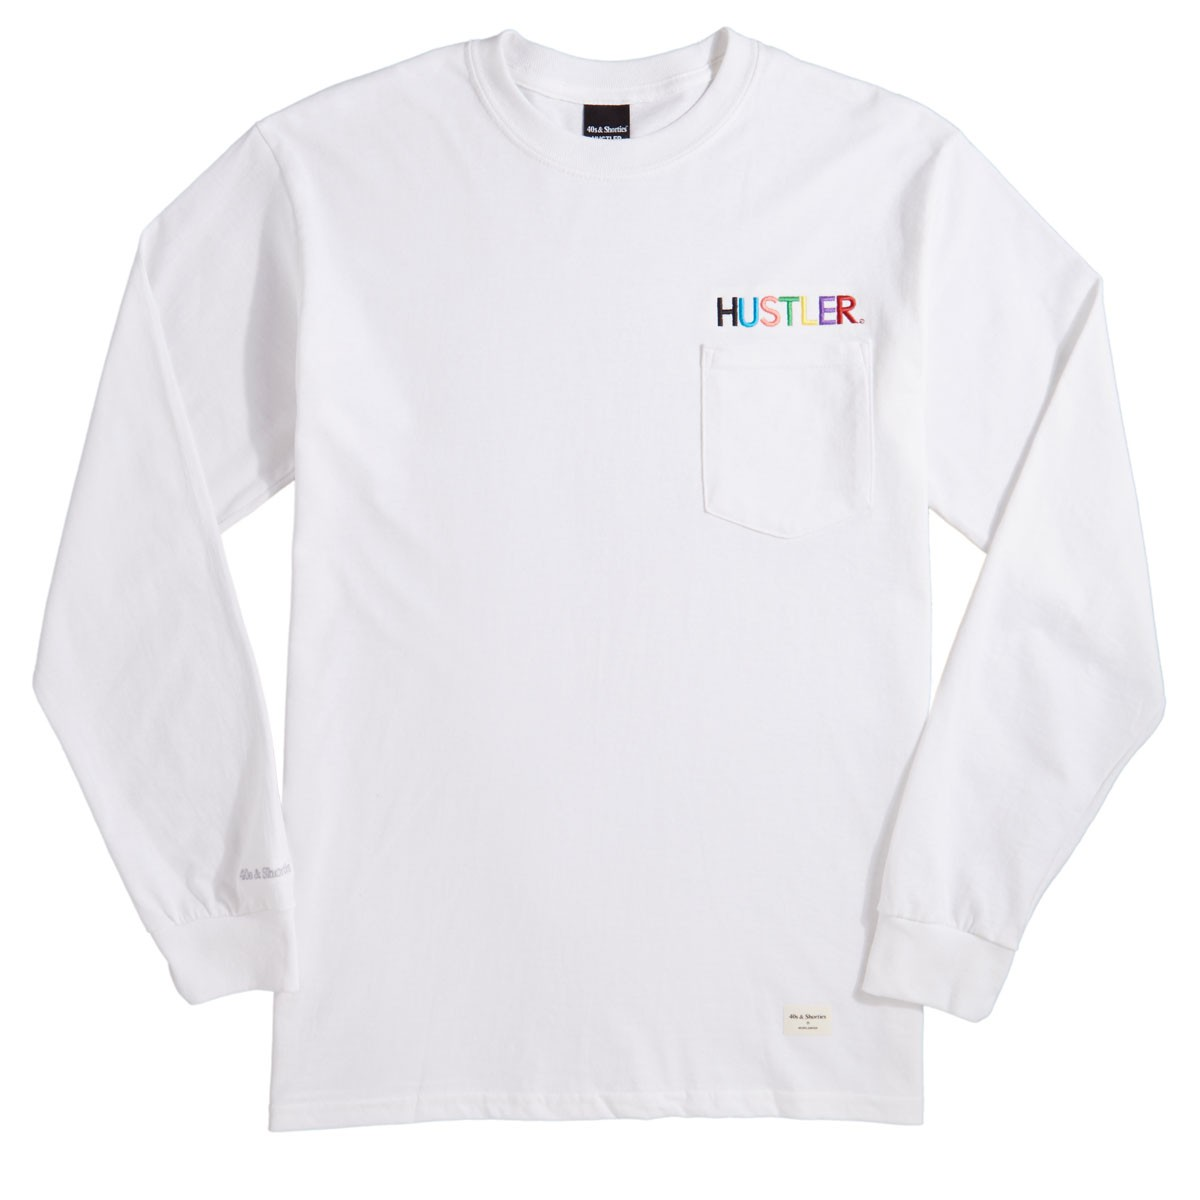 MARGIE: Hustler long sleeve t-shirts